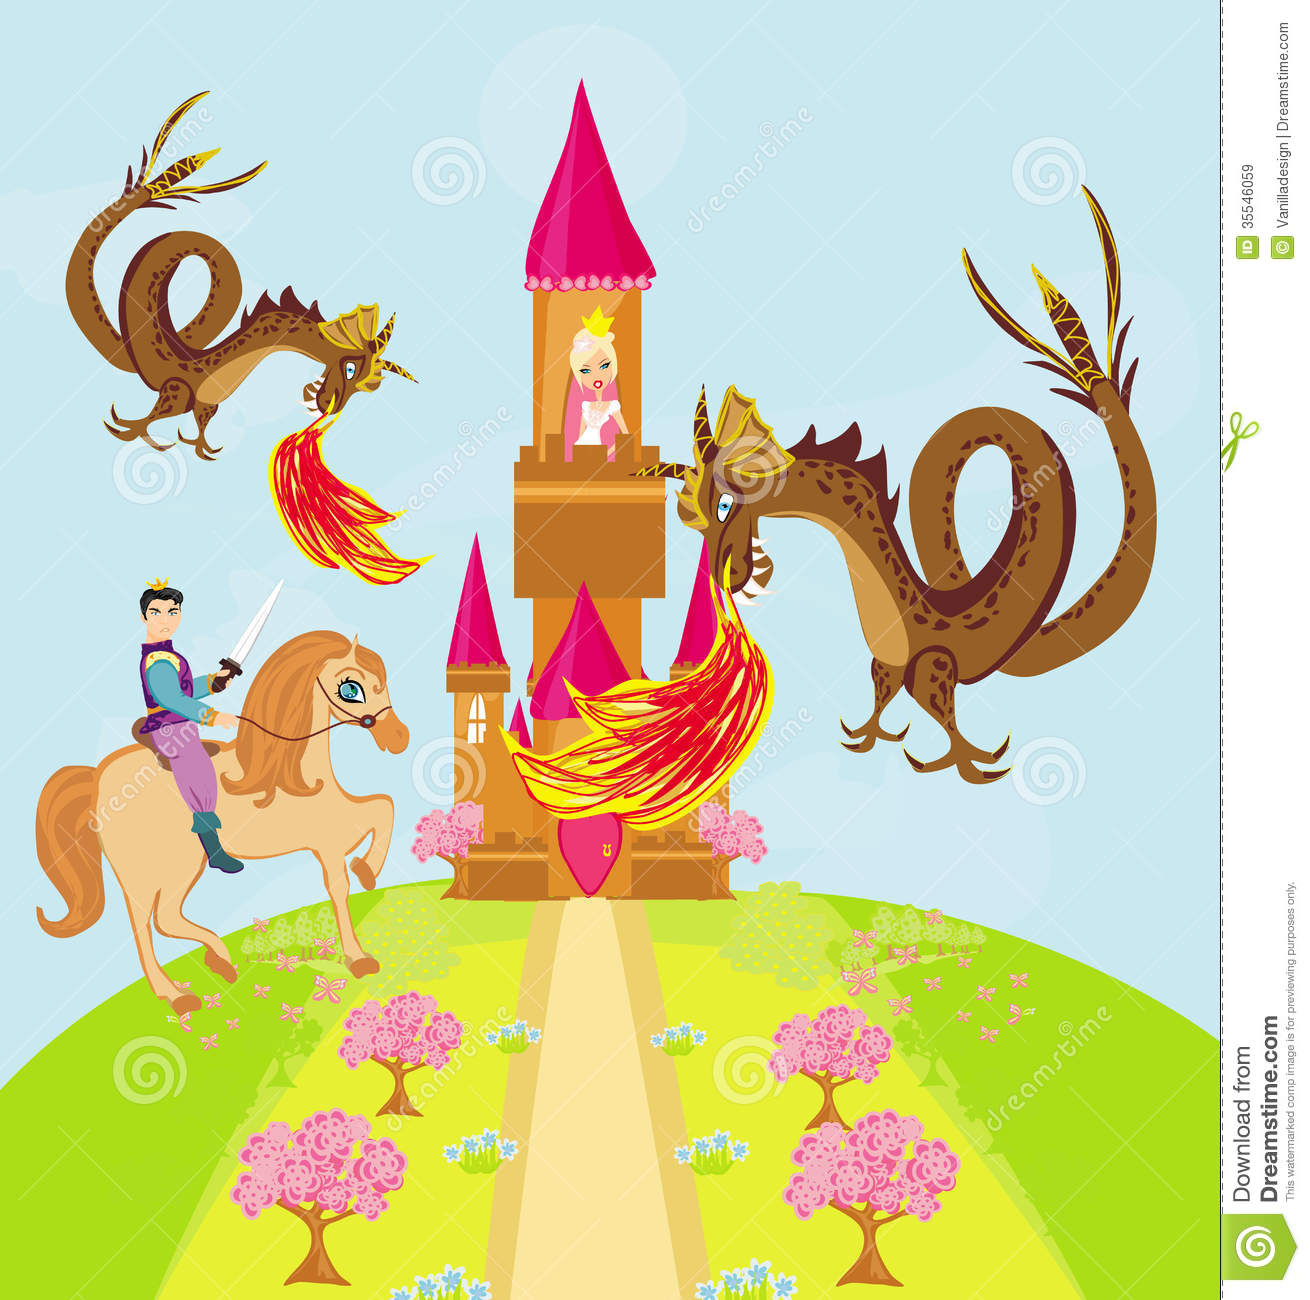 Two Dragons Attacking The Princess Castle Royalty Free Stock Images ...